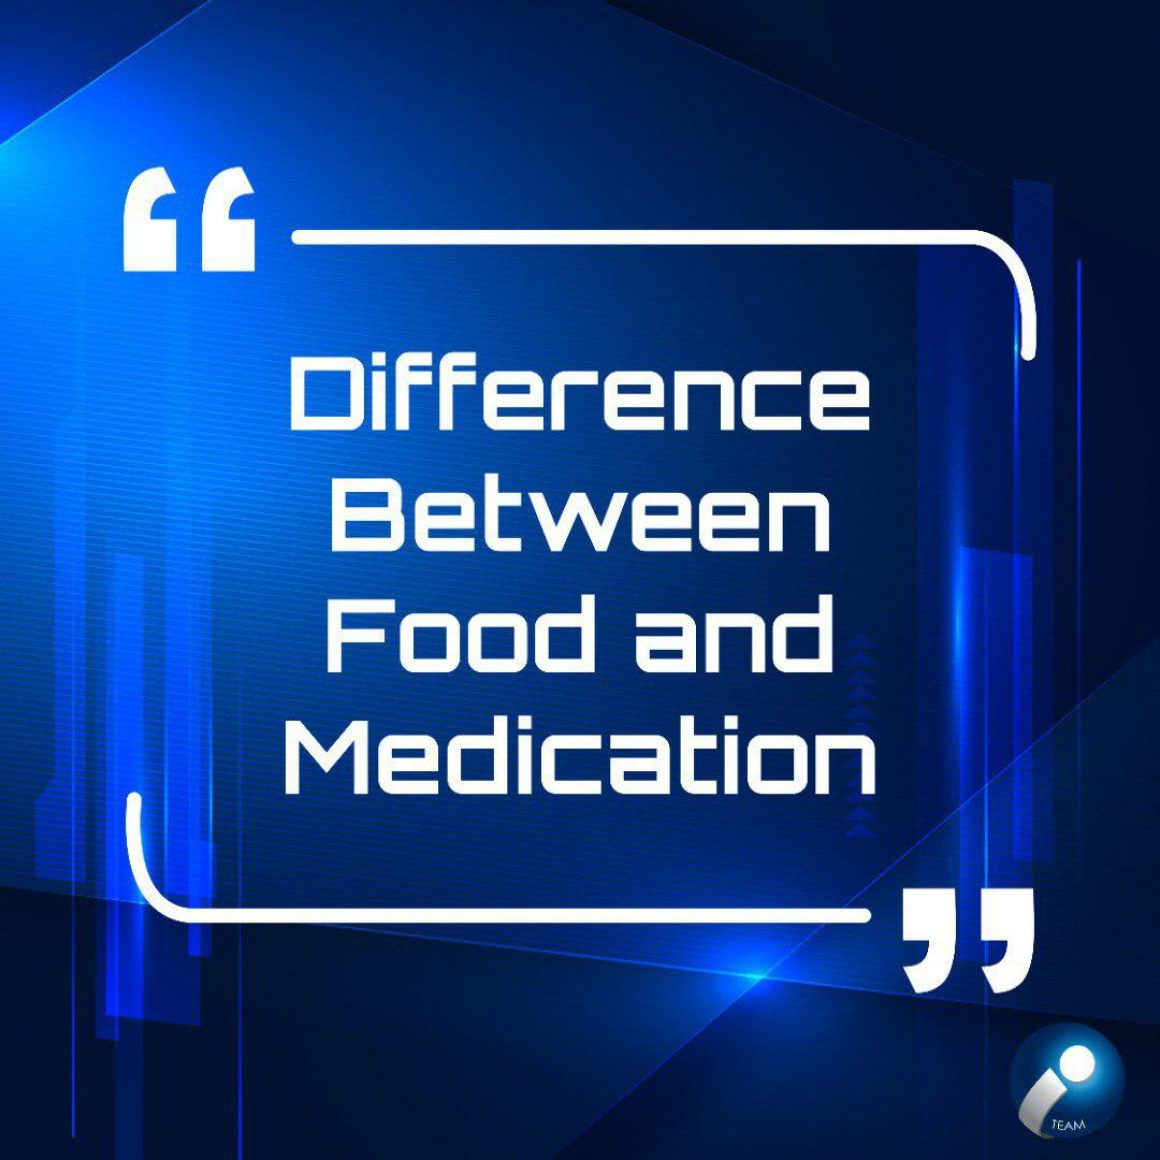 difference-between-food-medication-english